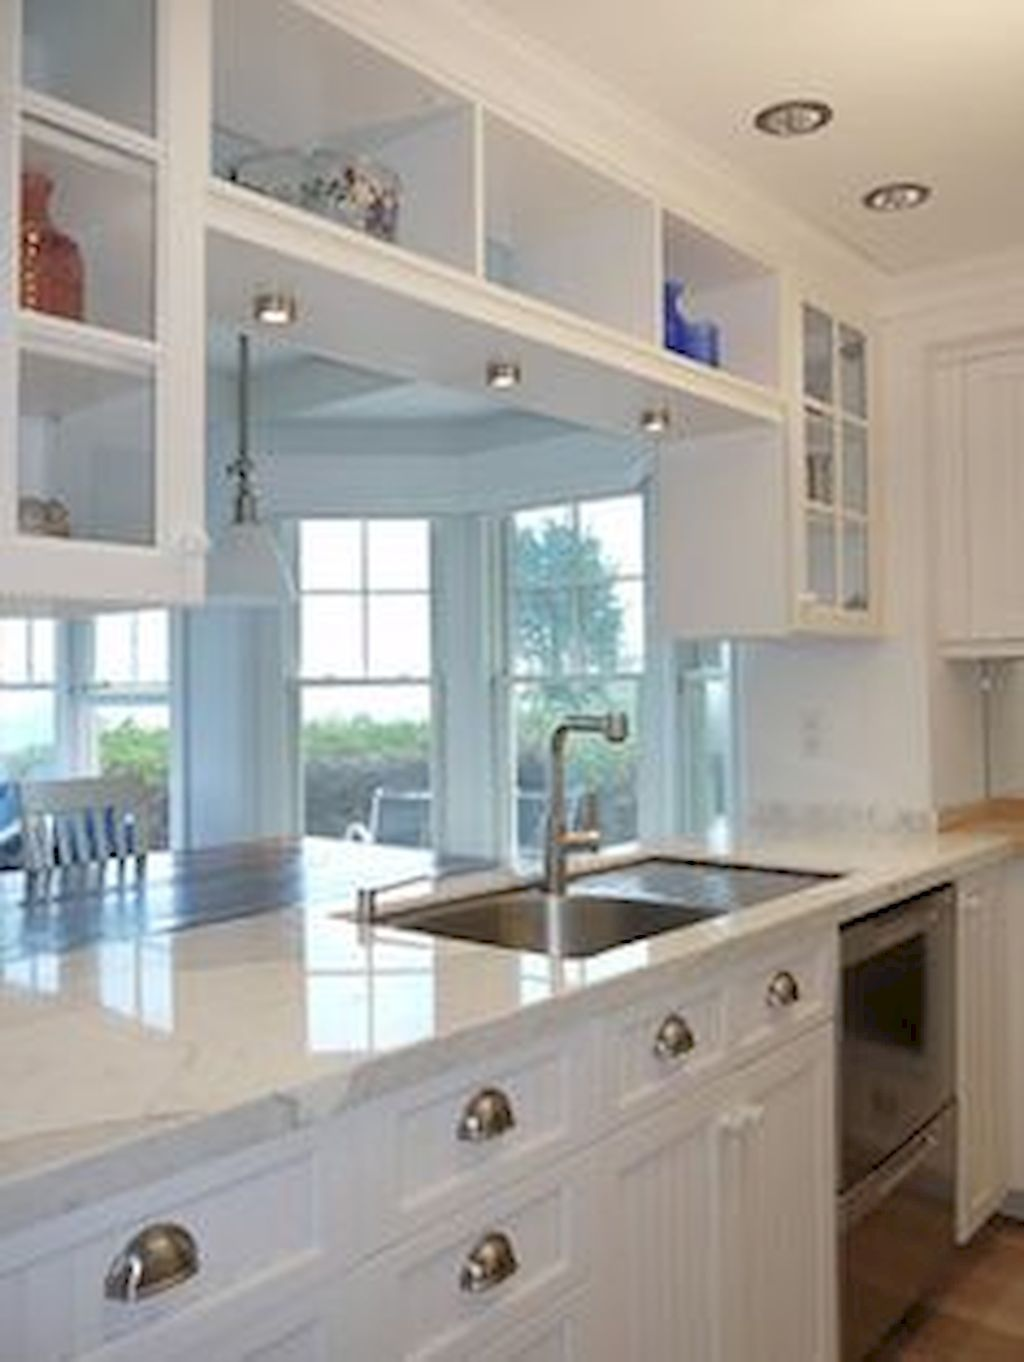 60 Beautiful Small Kitchen Remodel | Kitchens, Remodeling ideas and ...